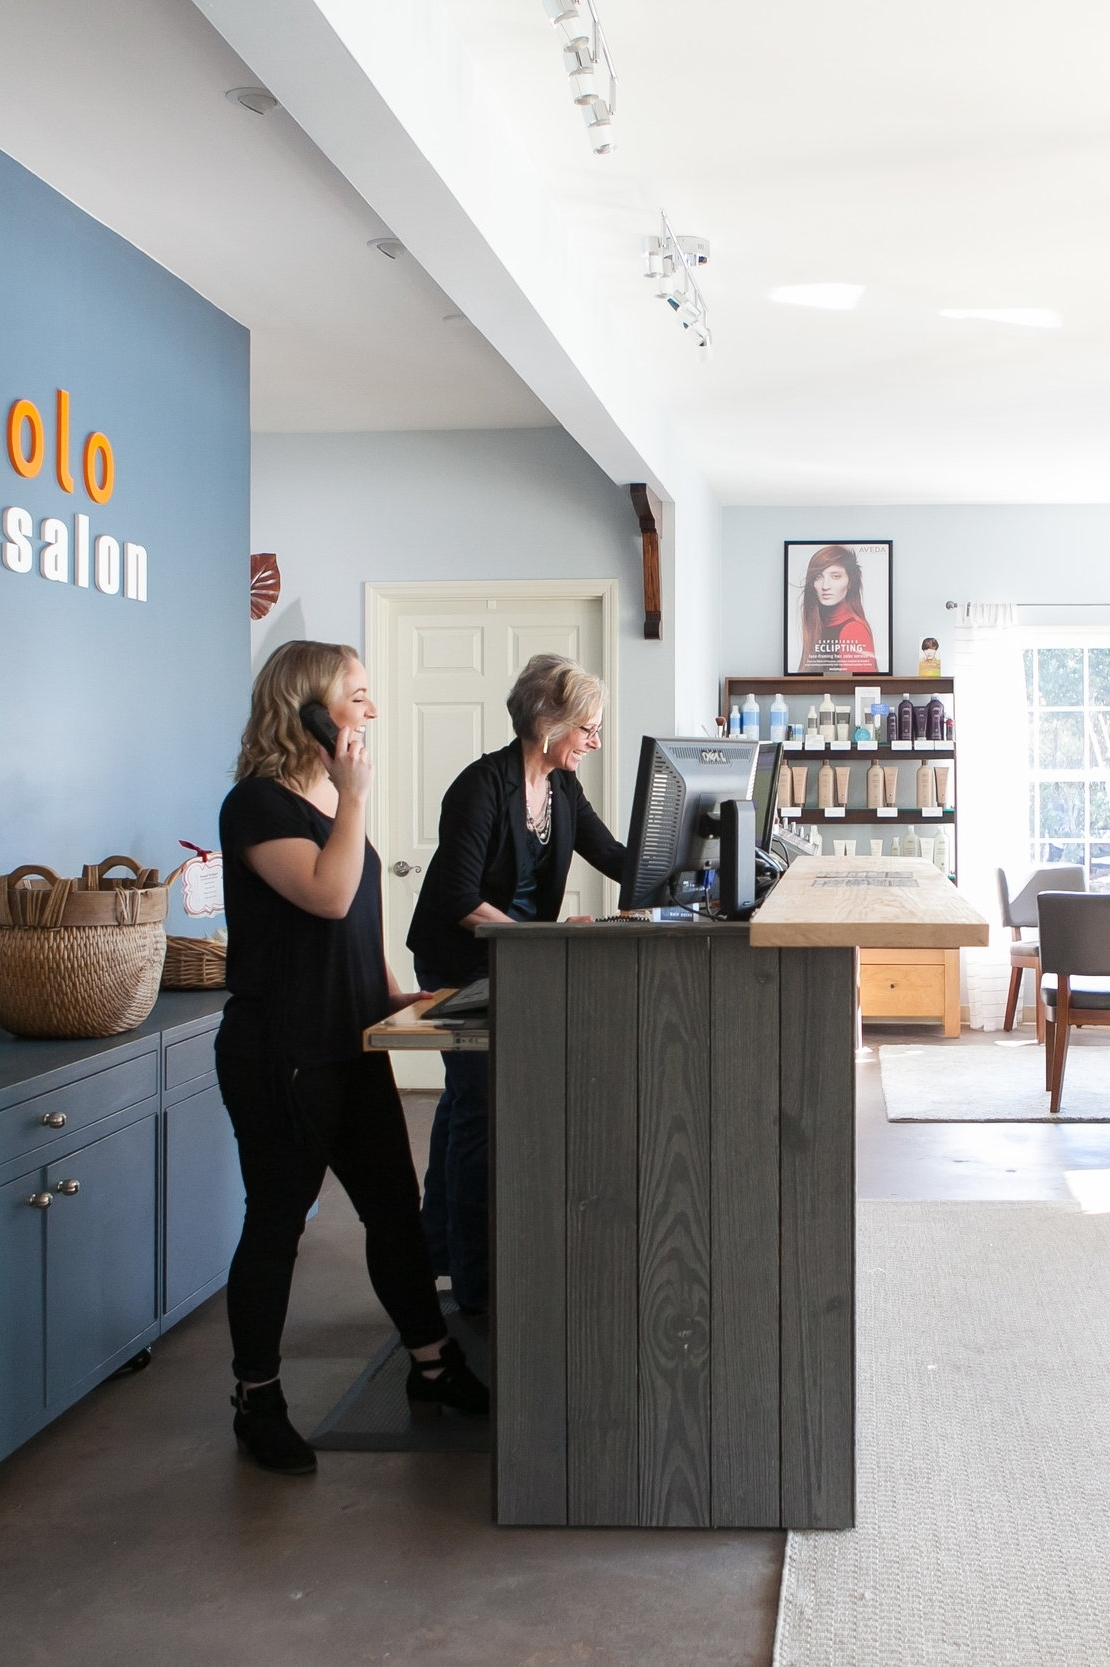 Piccolo Hair Salon is a team-based Aveda salon offering a refreshingly different experience. - Piccolo Hair Salon was founded more than 20 years ago on the philosophy that quality services should be both accessible and enjoyable. As an Aveda concept salon, we have aligned ourselves with an international brand known for quality products and a consistent salon experience. But, we are striving to take it a step further.Every staff member at Piccolo has a common goal of providing exceptional customer service to every client who walks in the door. We do so by acting as a team and helping one another.Our team-based approach offers a lot of flexibility in booking appointments, which is great if you need to get in on short notice. In addition, we are focused on managing time well – eliminating long waits for clients. To enhance your experience, we have a no-tipping policy upon checkout as a referral is our biggest gratuity!Piccolo also offers a service reward program and Aveda's pure privilege℠ reward program.Our clients appreciate our different approach, and we think you will too! We welcome women, men and children.